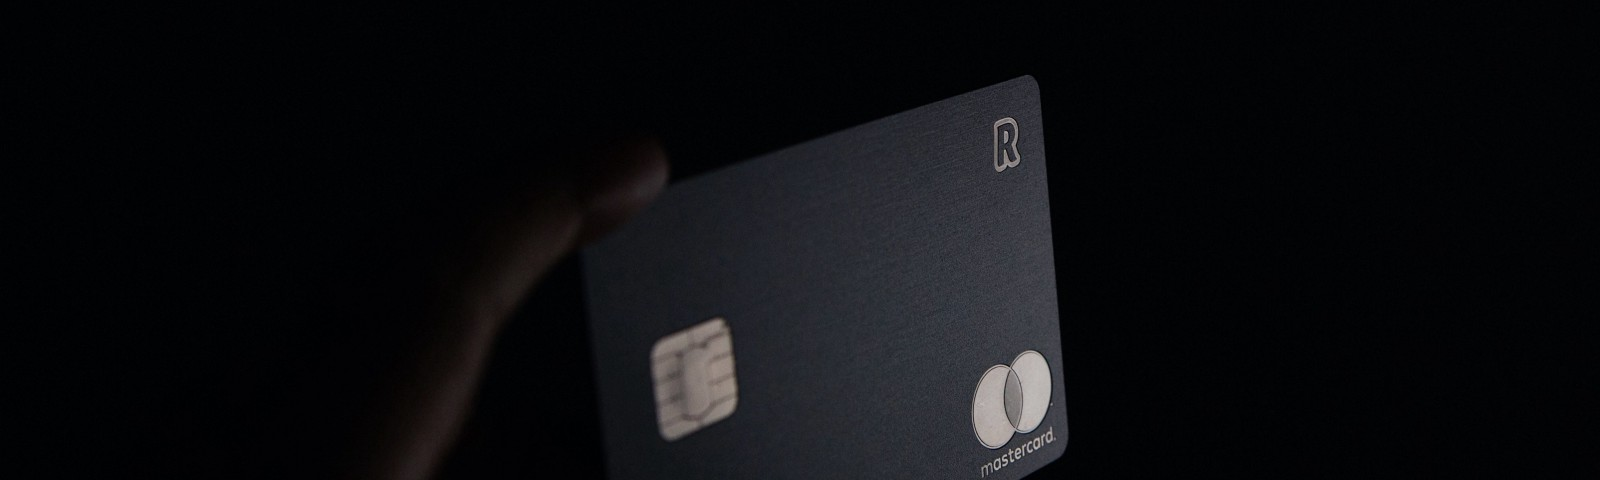 A hand holds a credit card up against a black background.